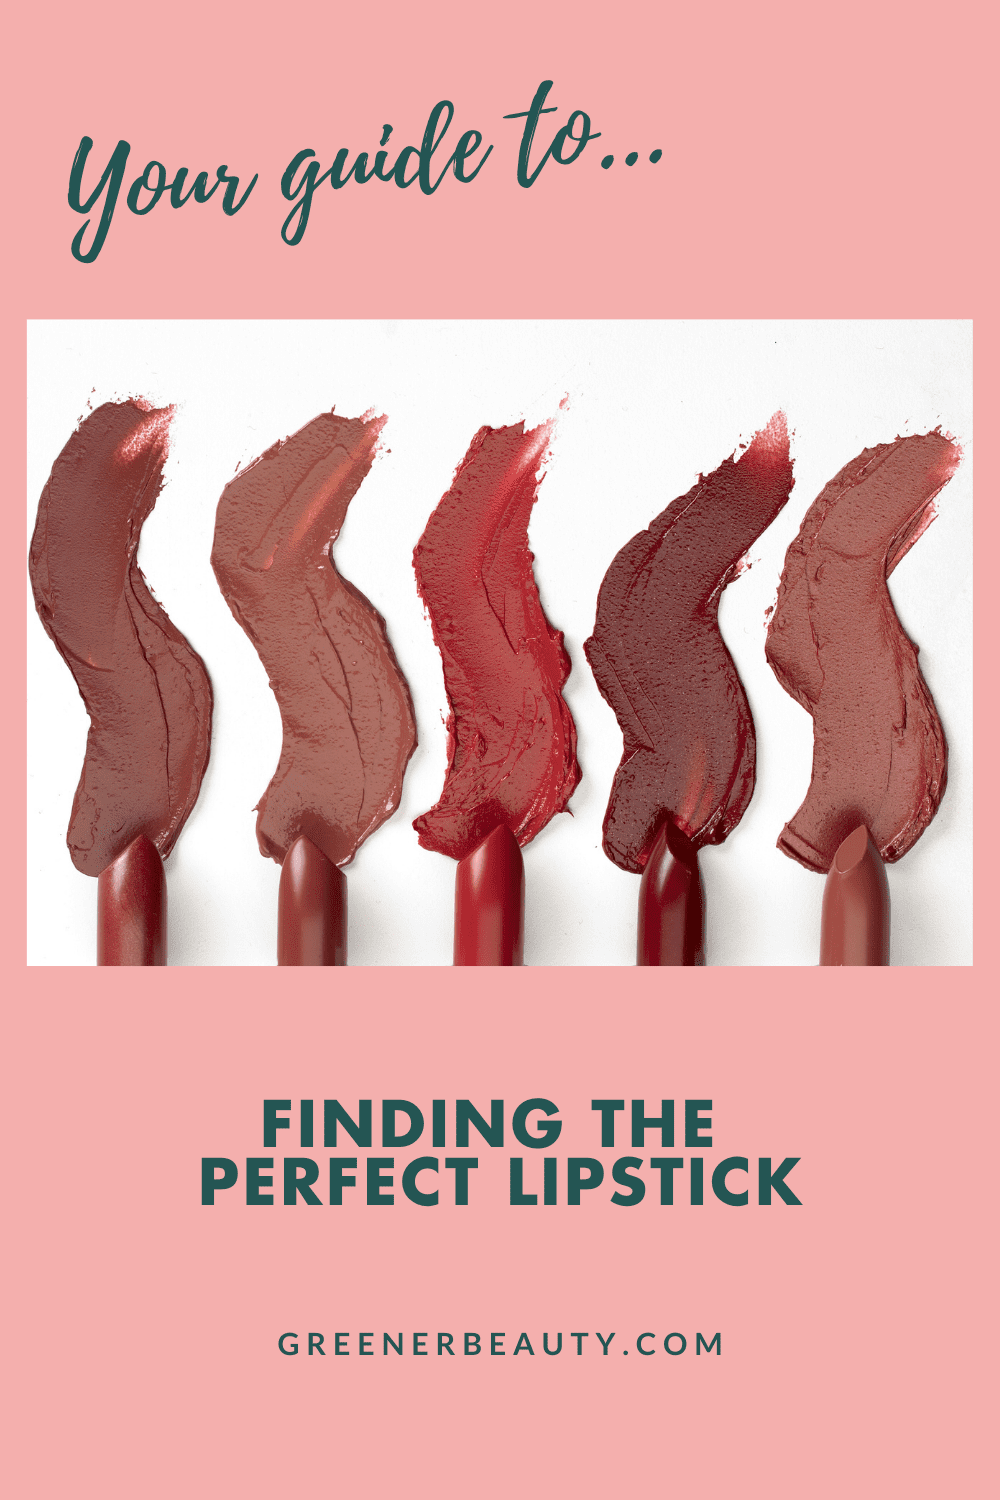 Your guide to Finding the Perfect Lipstick